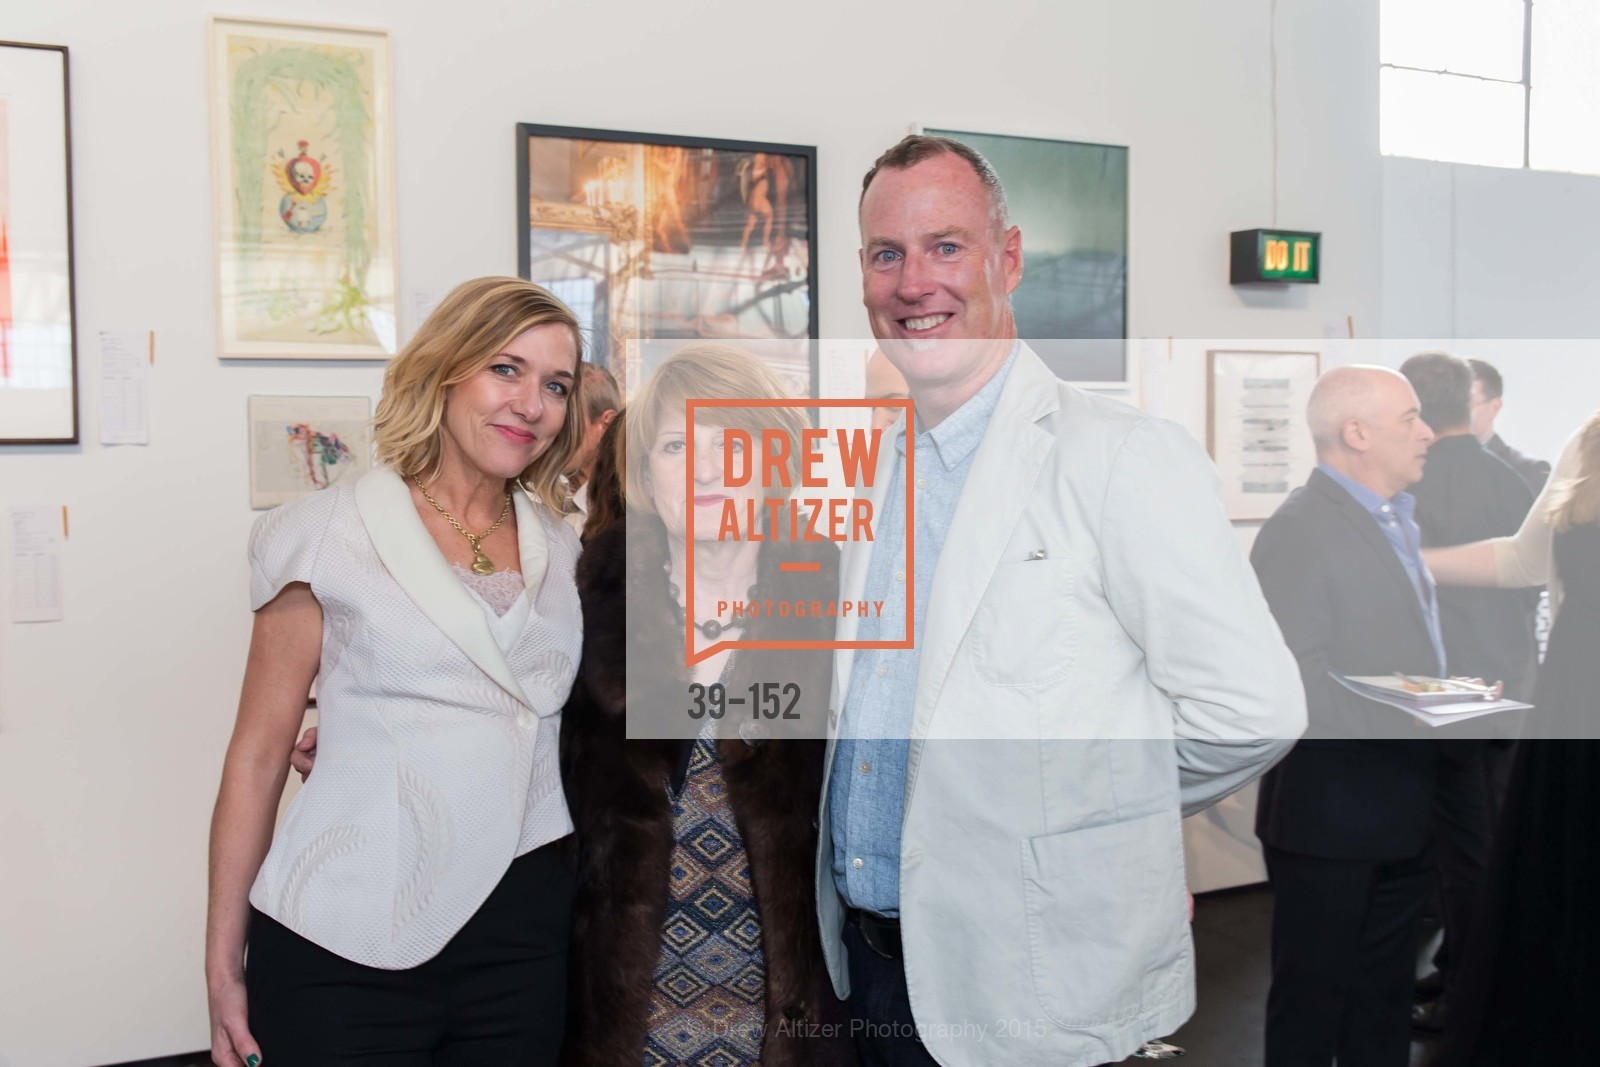 Lara Deam, Chris Ospital, Chris Deam, Headlands Center for the Arts Benefit Auction, Fort Mason Festival, Pavilon, June 2nd, 2015,Drew Altizer, Drew Altizer Photography, full-service event agency, private events, San Francisco photographer, photographer California